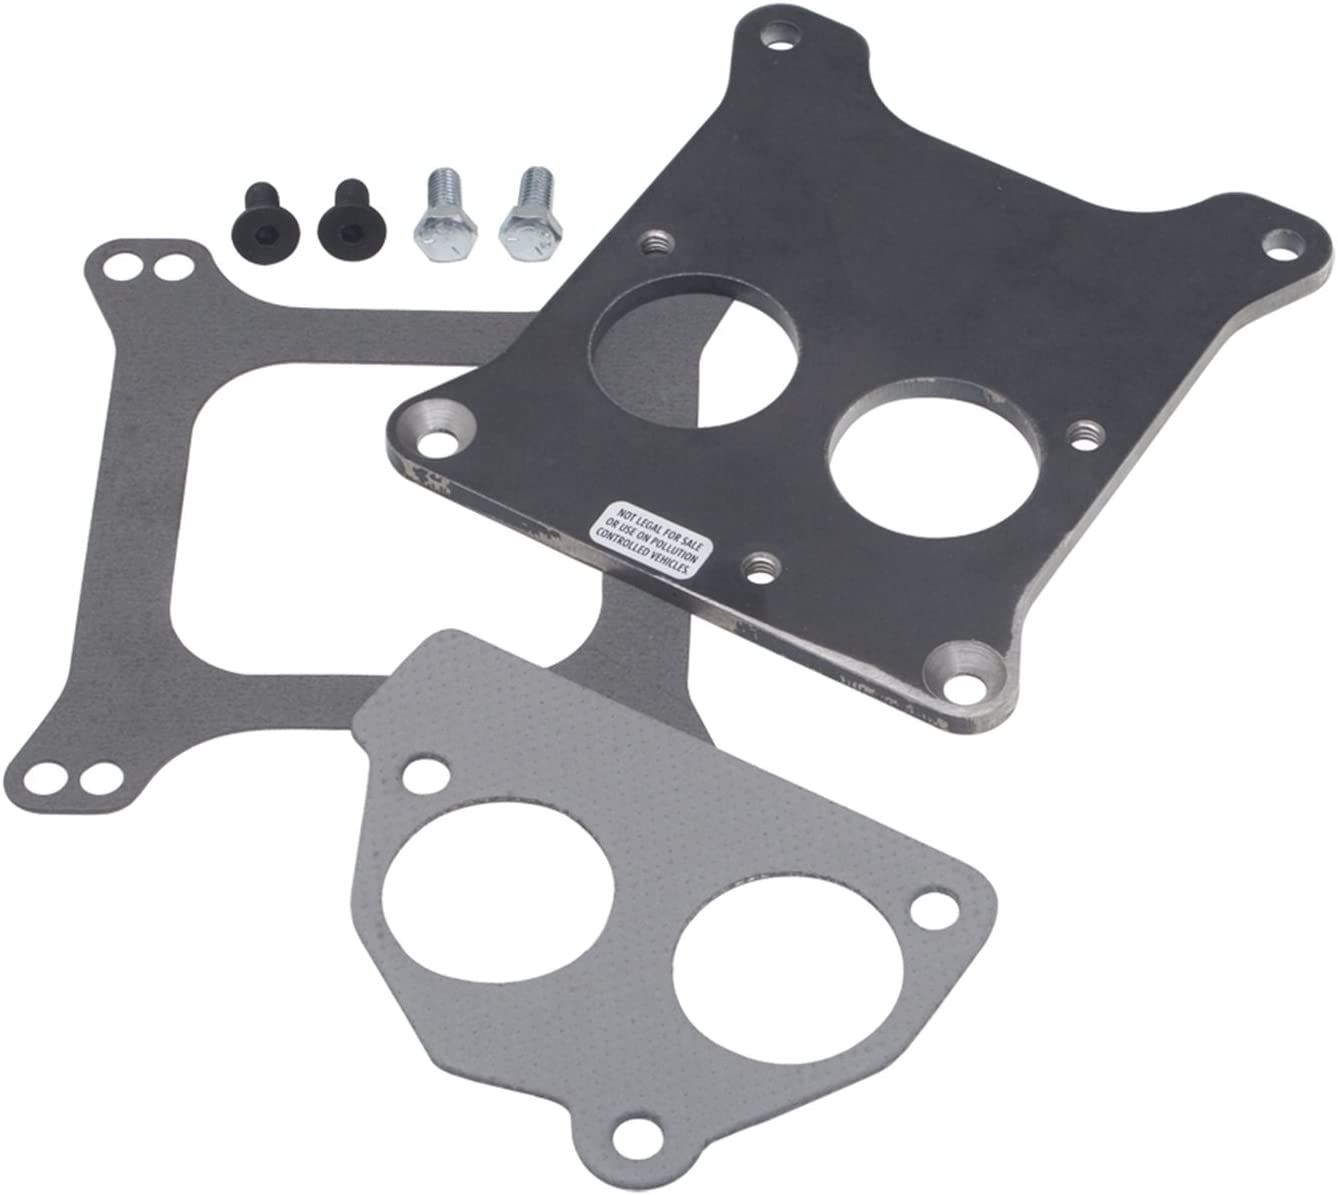 Trans-Dapt Performance Products 2202 Carburetor To TBI Adapter